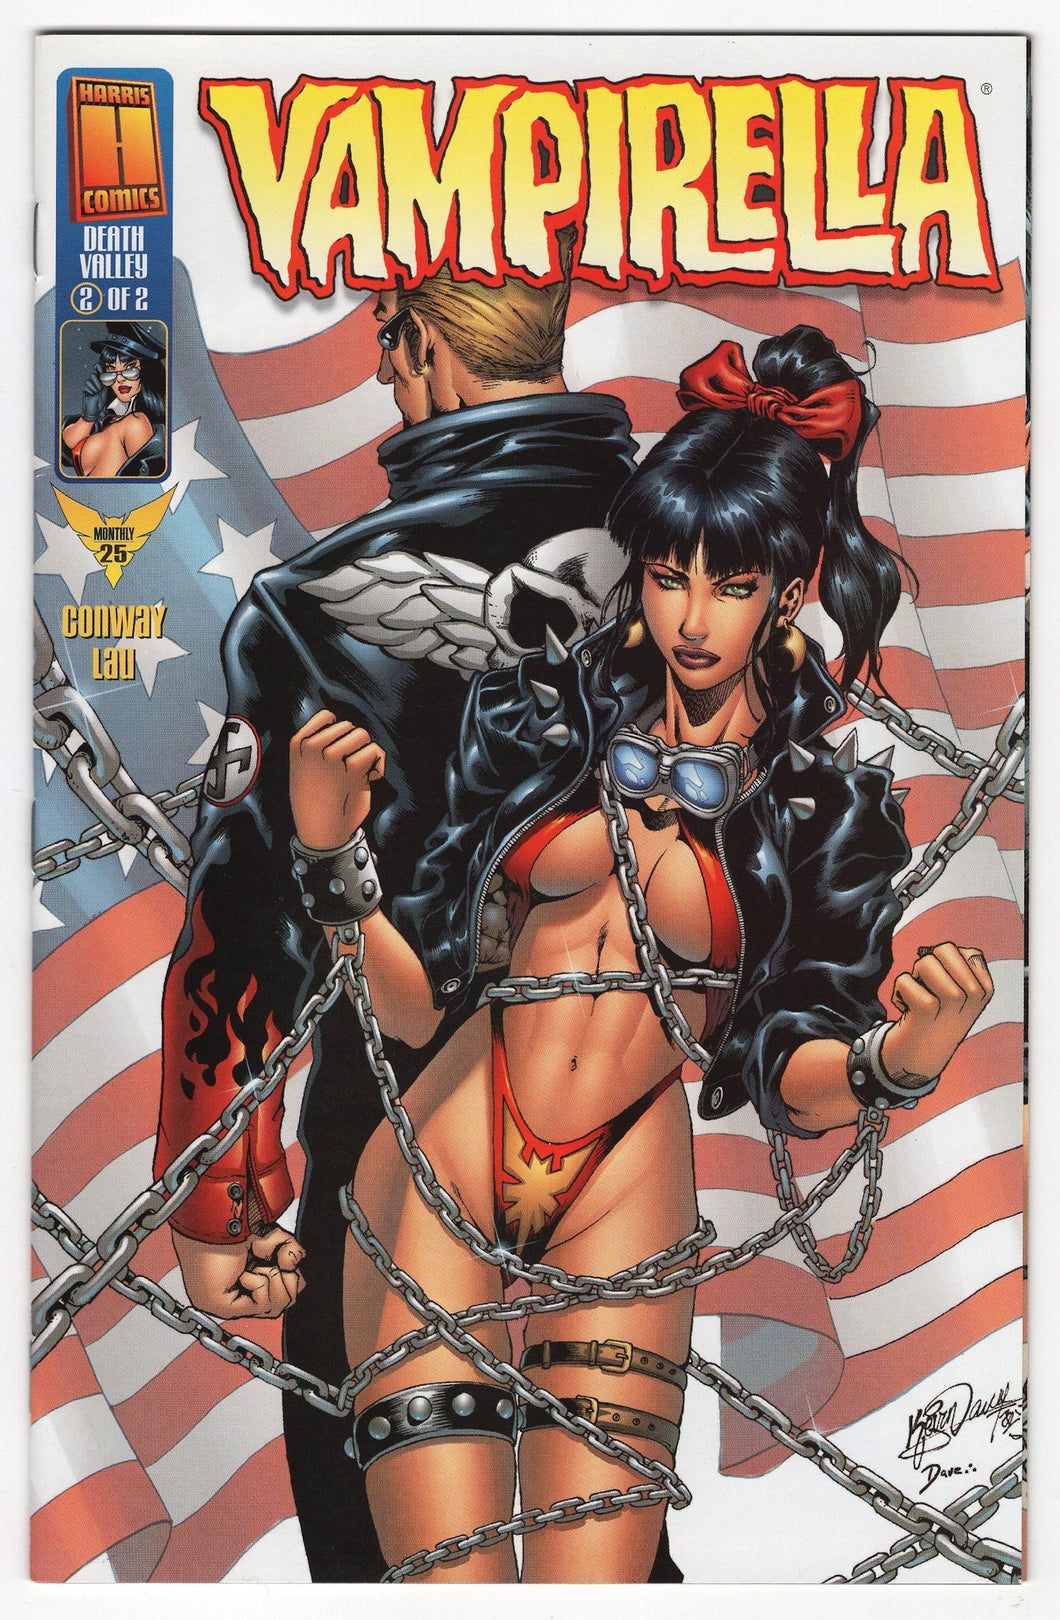 Vampirella Monthly #25 Cover Front